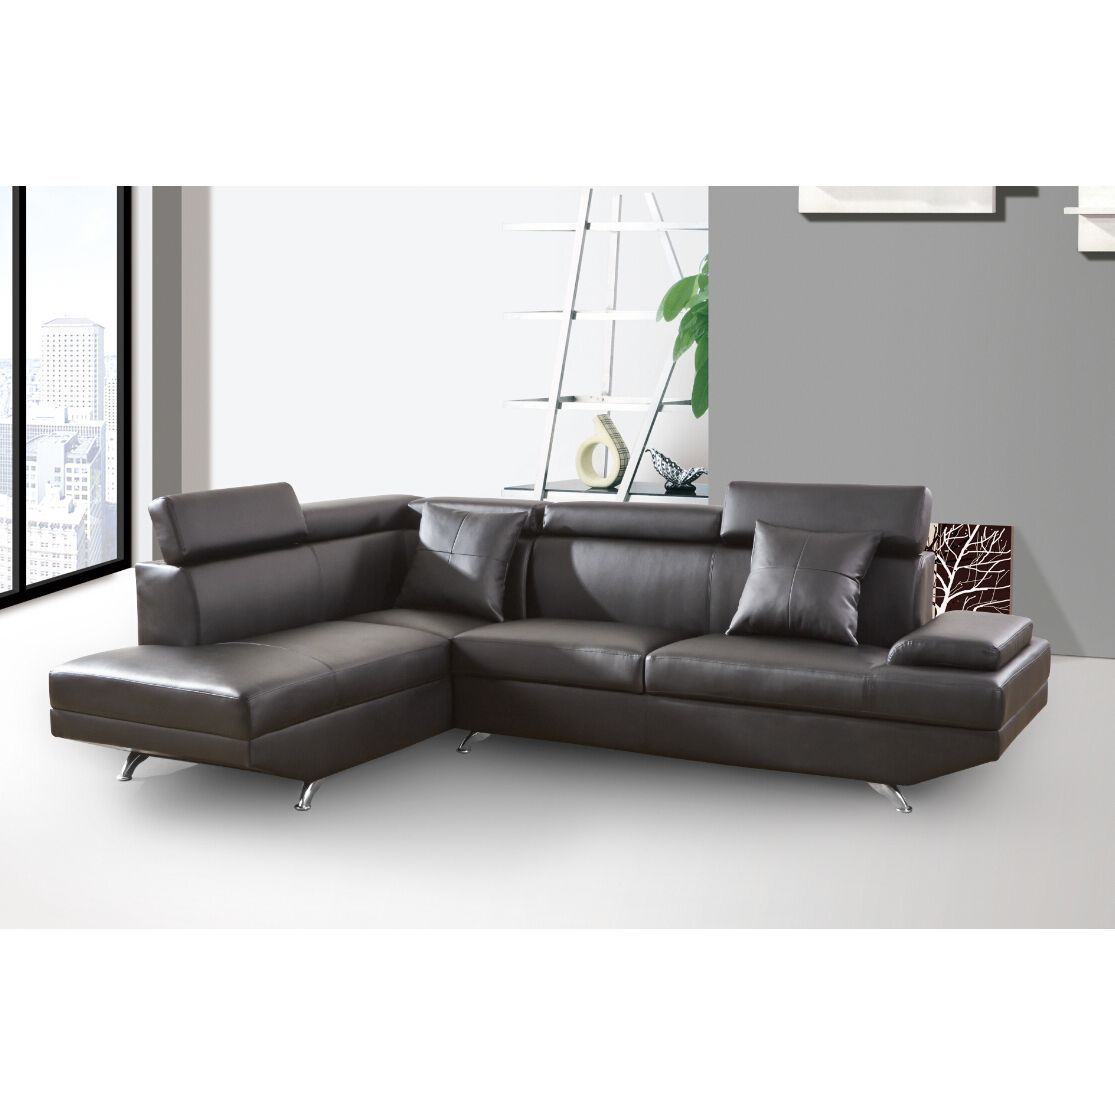 Elena black leather modern 2 piece sectional sofa set for Black leather sectional with chaise